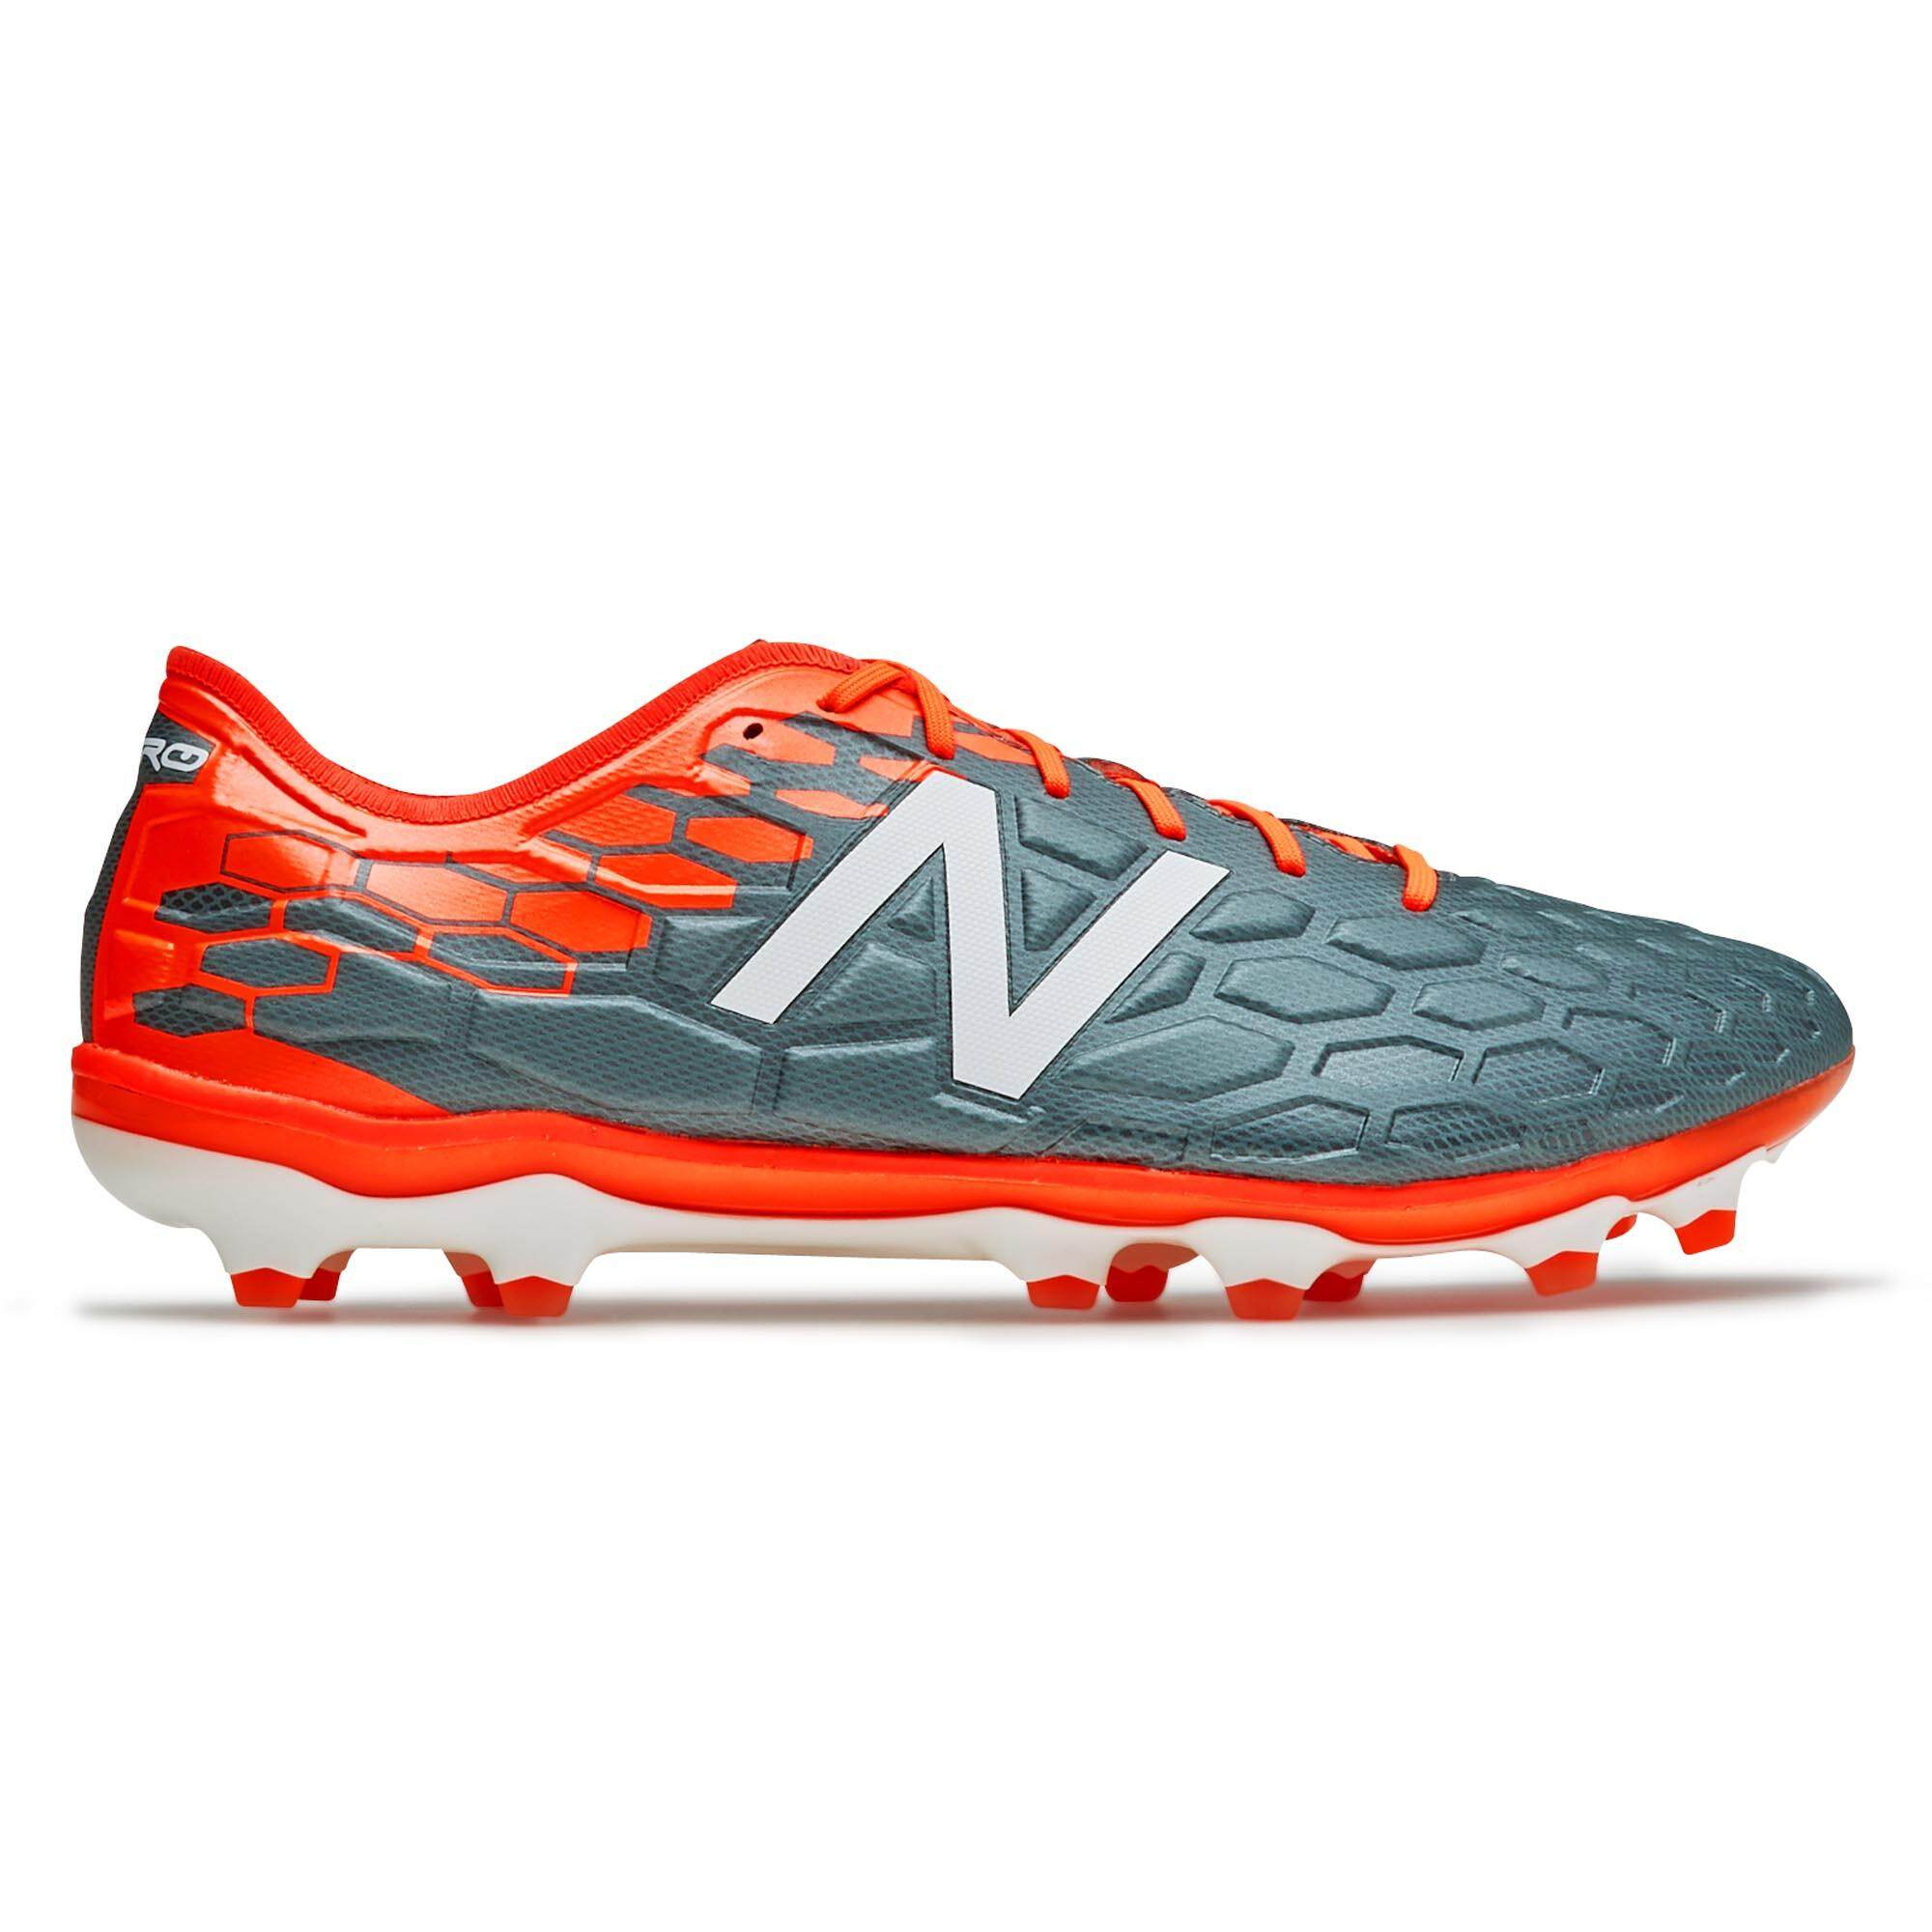 best sneakers d8538 abbb4 New Balance Men s Visaro 2.0 Pro FG - Typhoon Orange